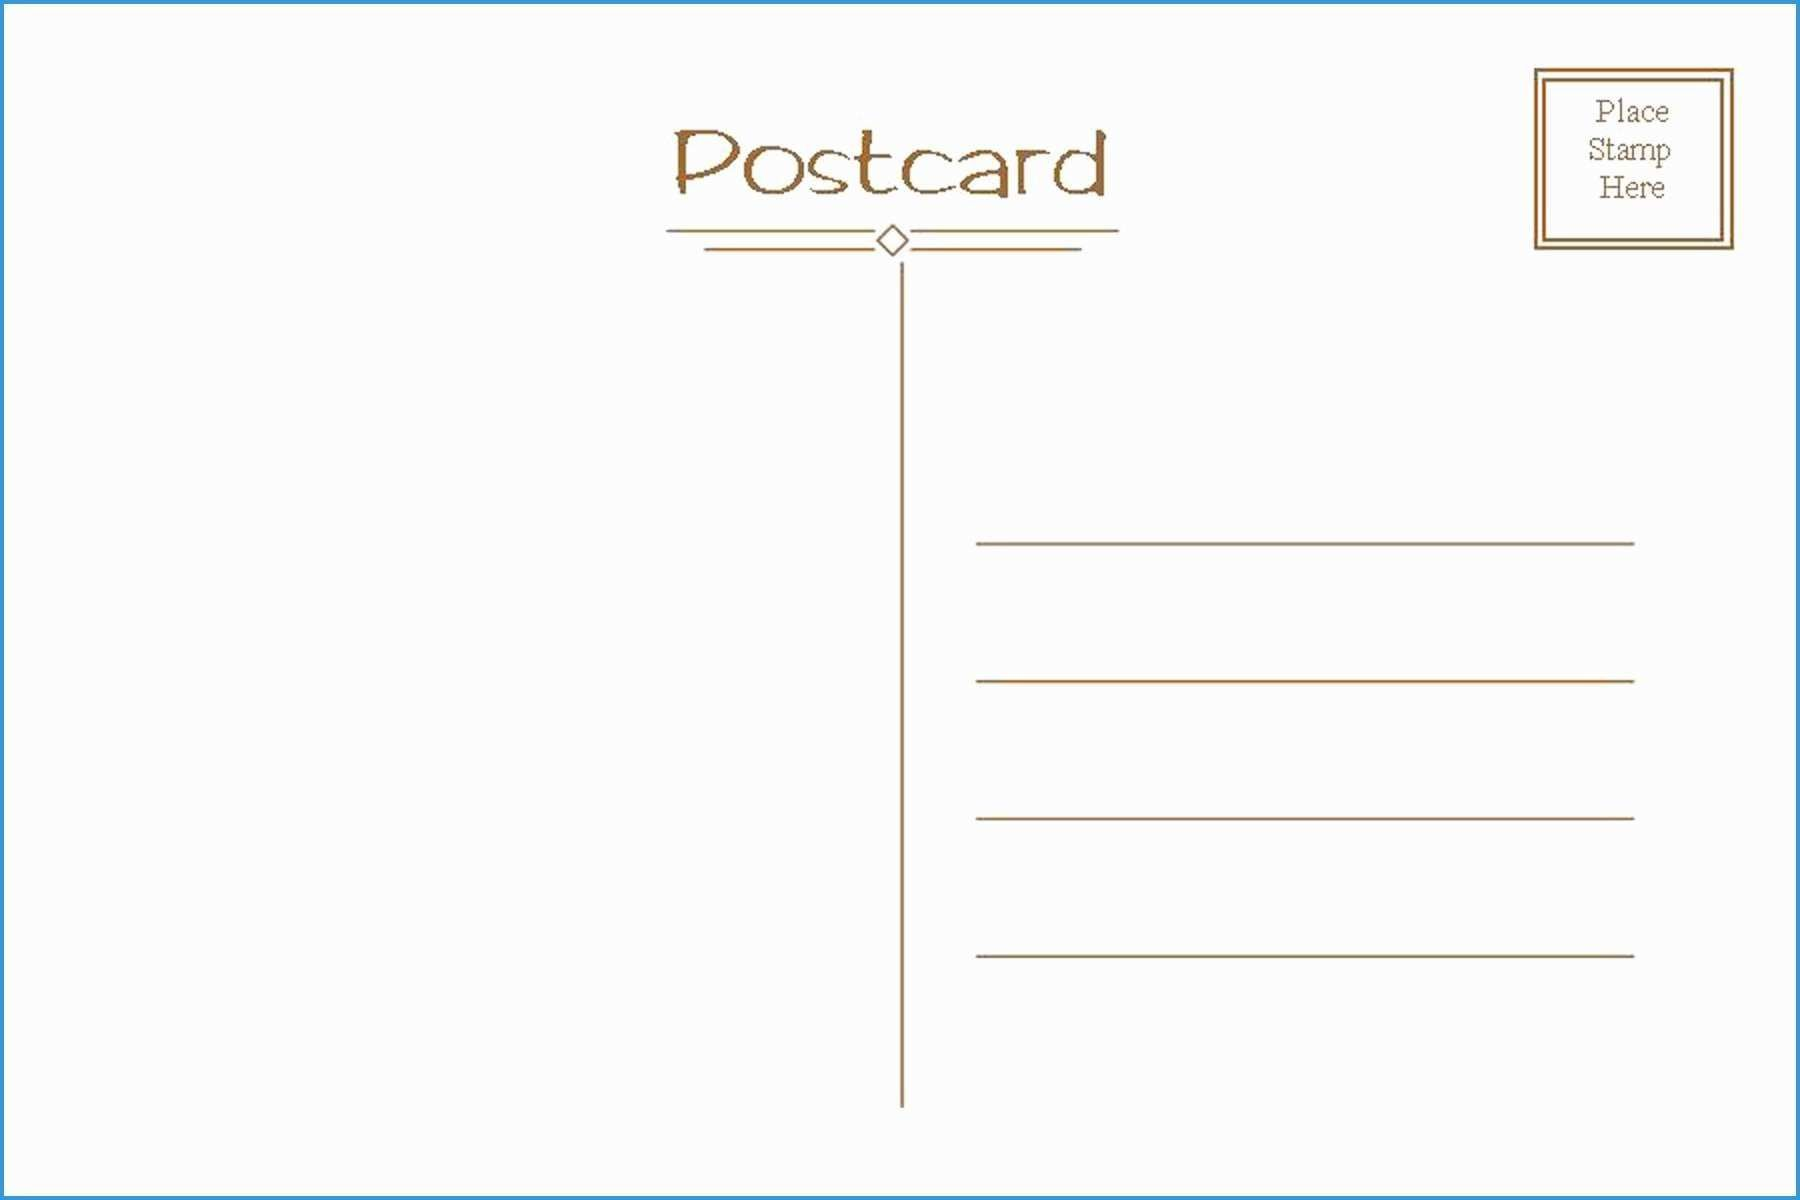 008 Impressive Postcard Front And Back Template Free High Resolution  To SchoolFull